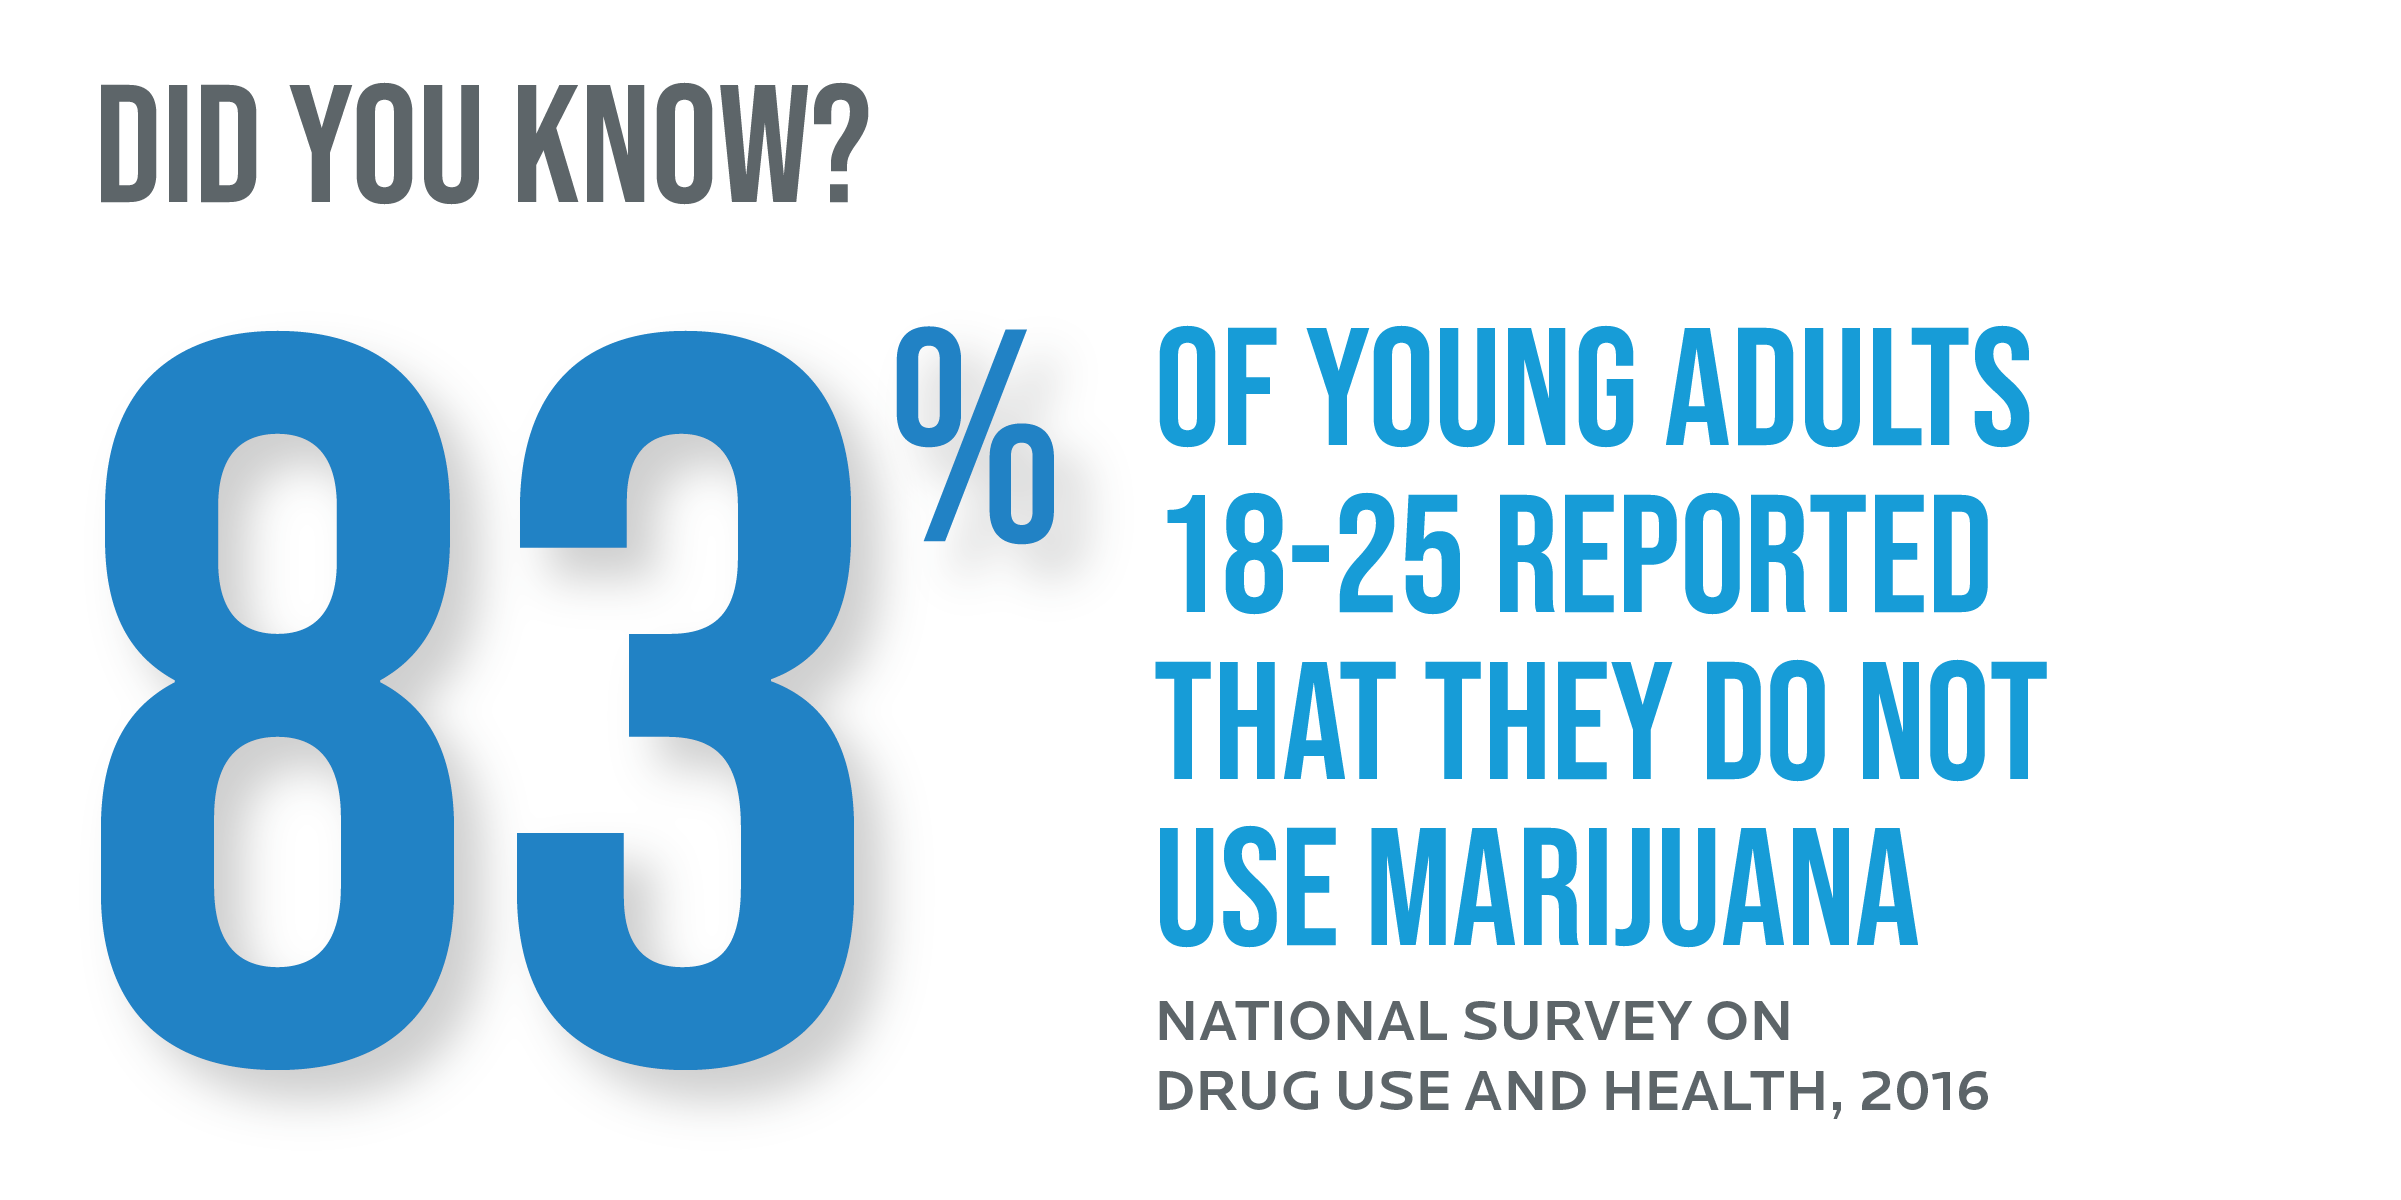 83% of young adults 18-25 reported that they do not use marijuana